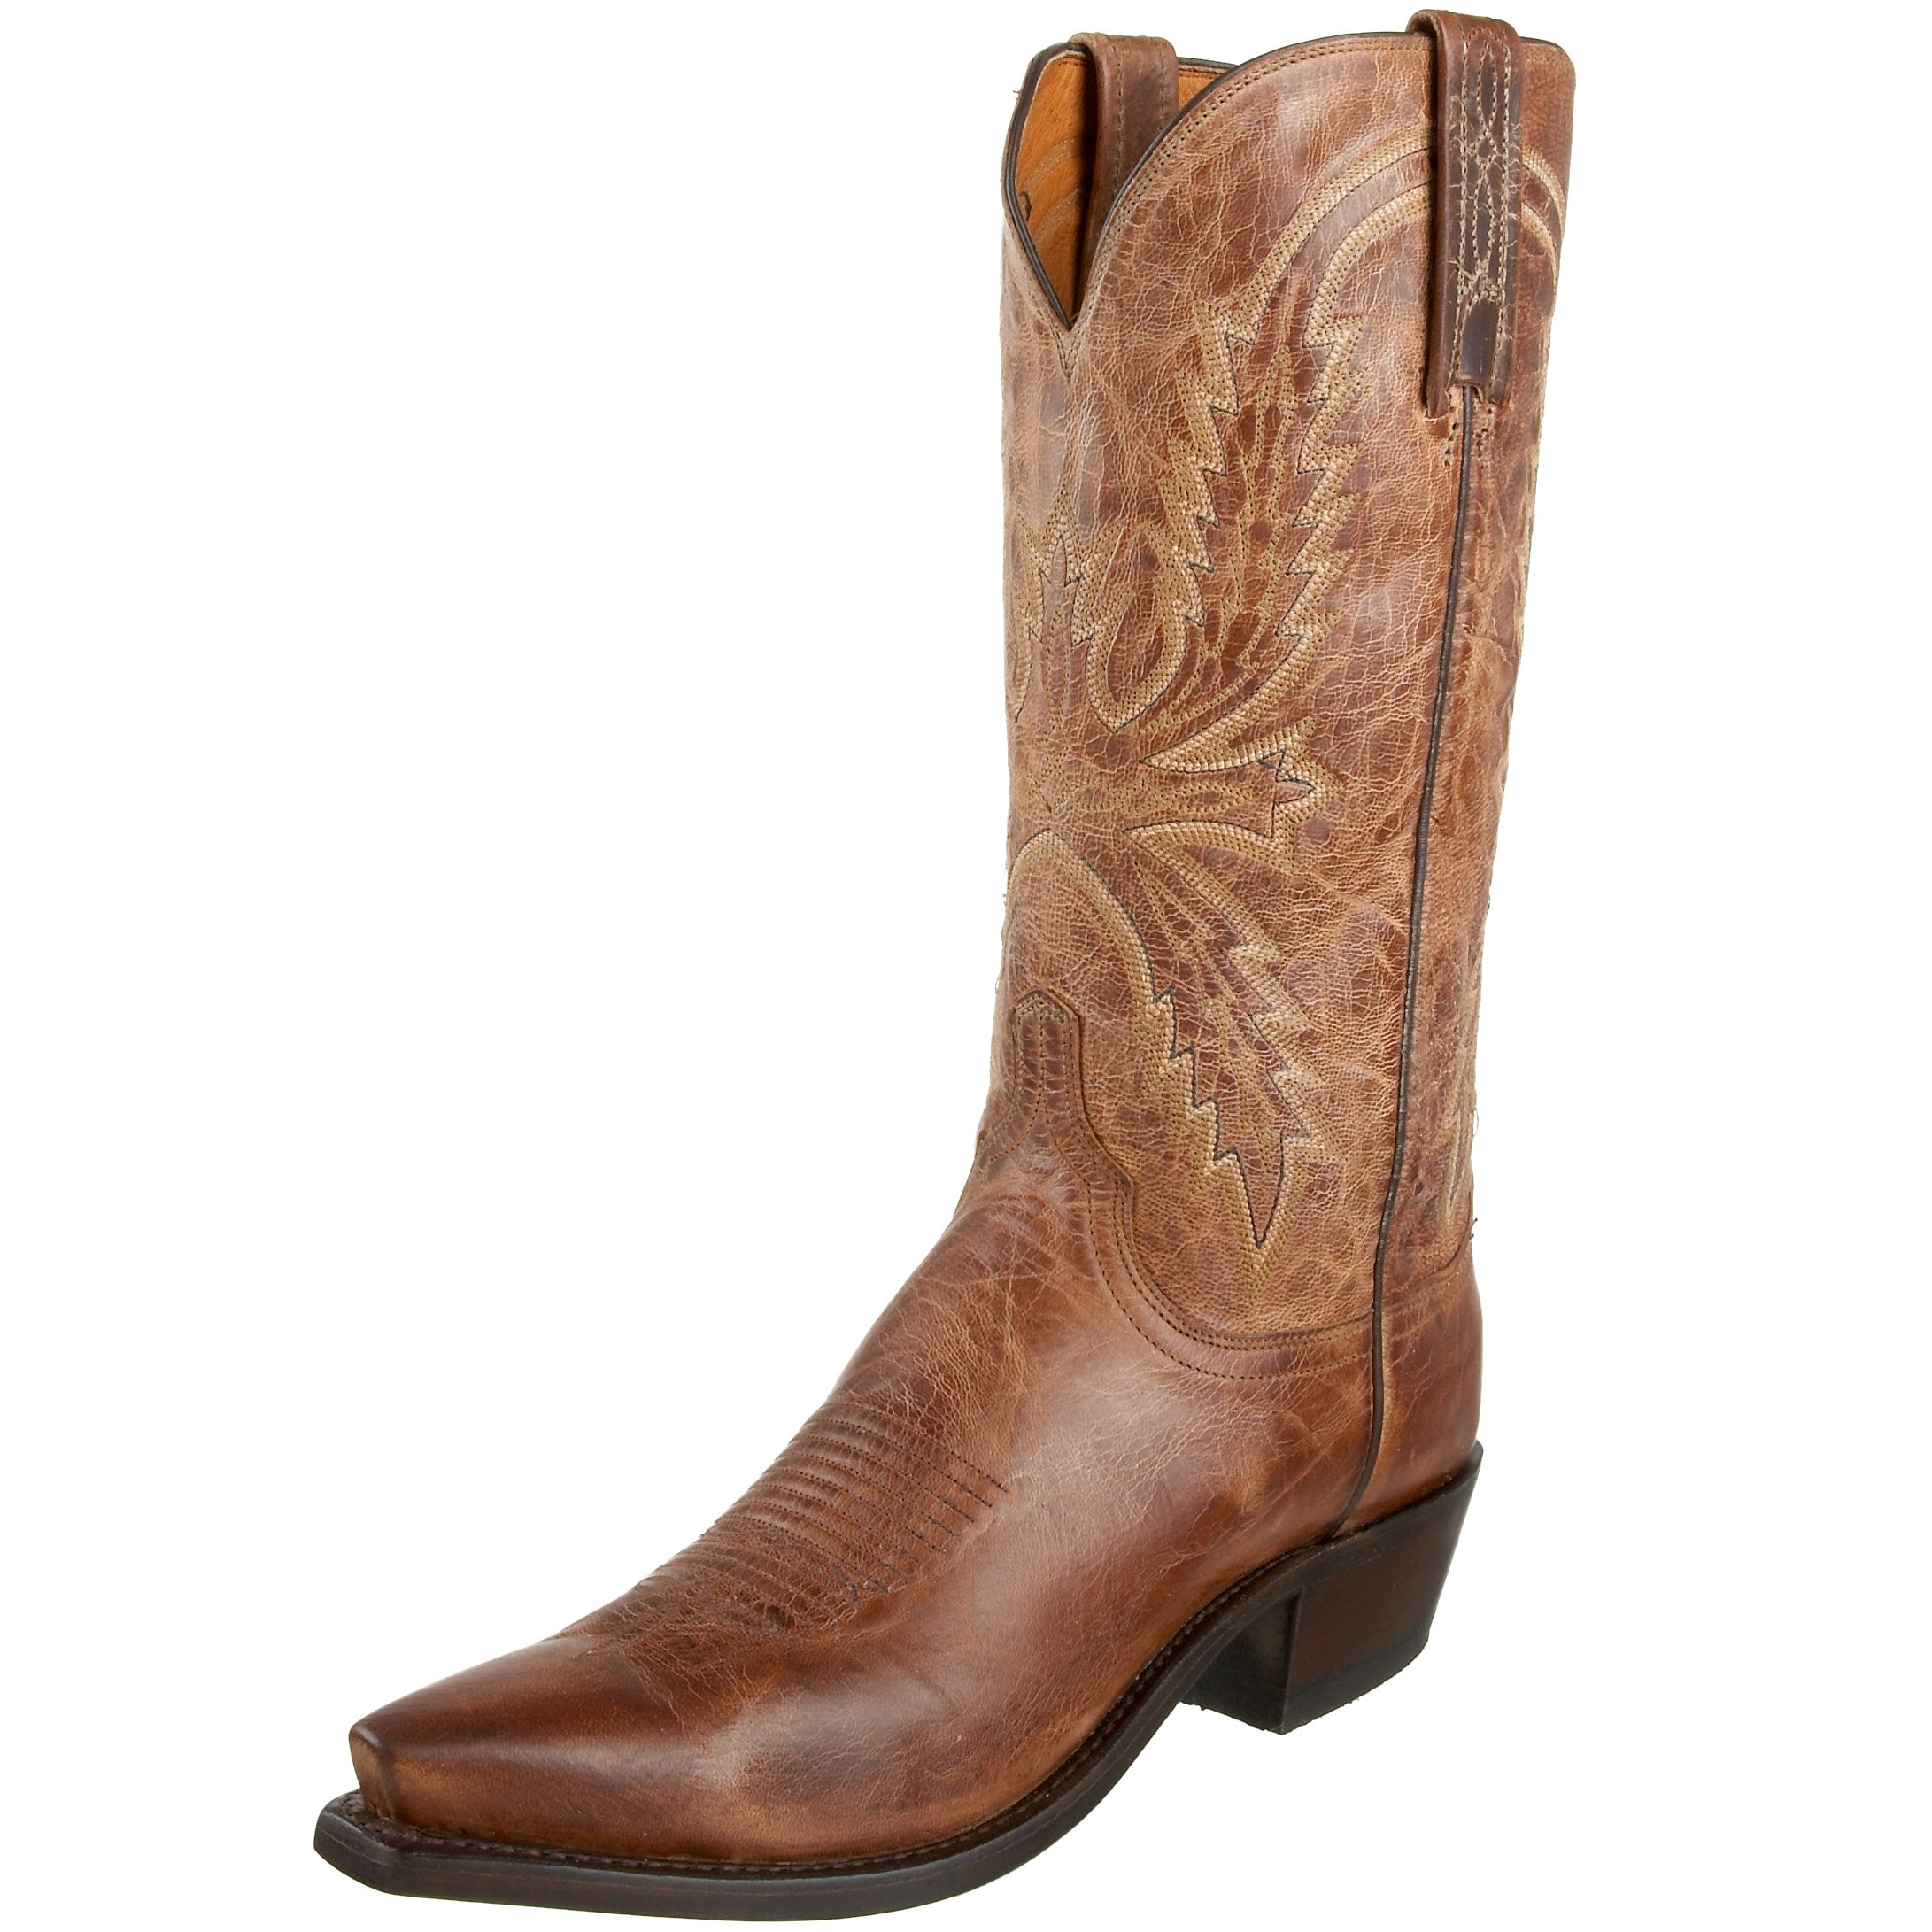 1883 by Lucchese Men's N1547.54 Western Boots,Tan Burnish,8 D(M)US